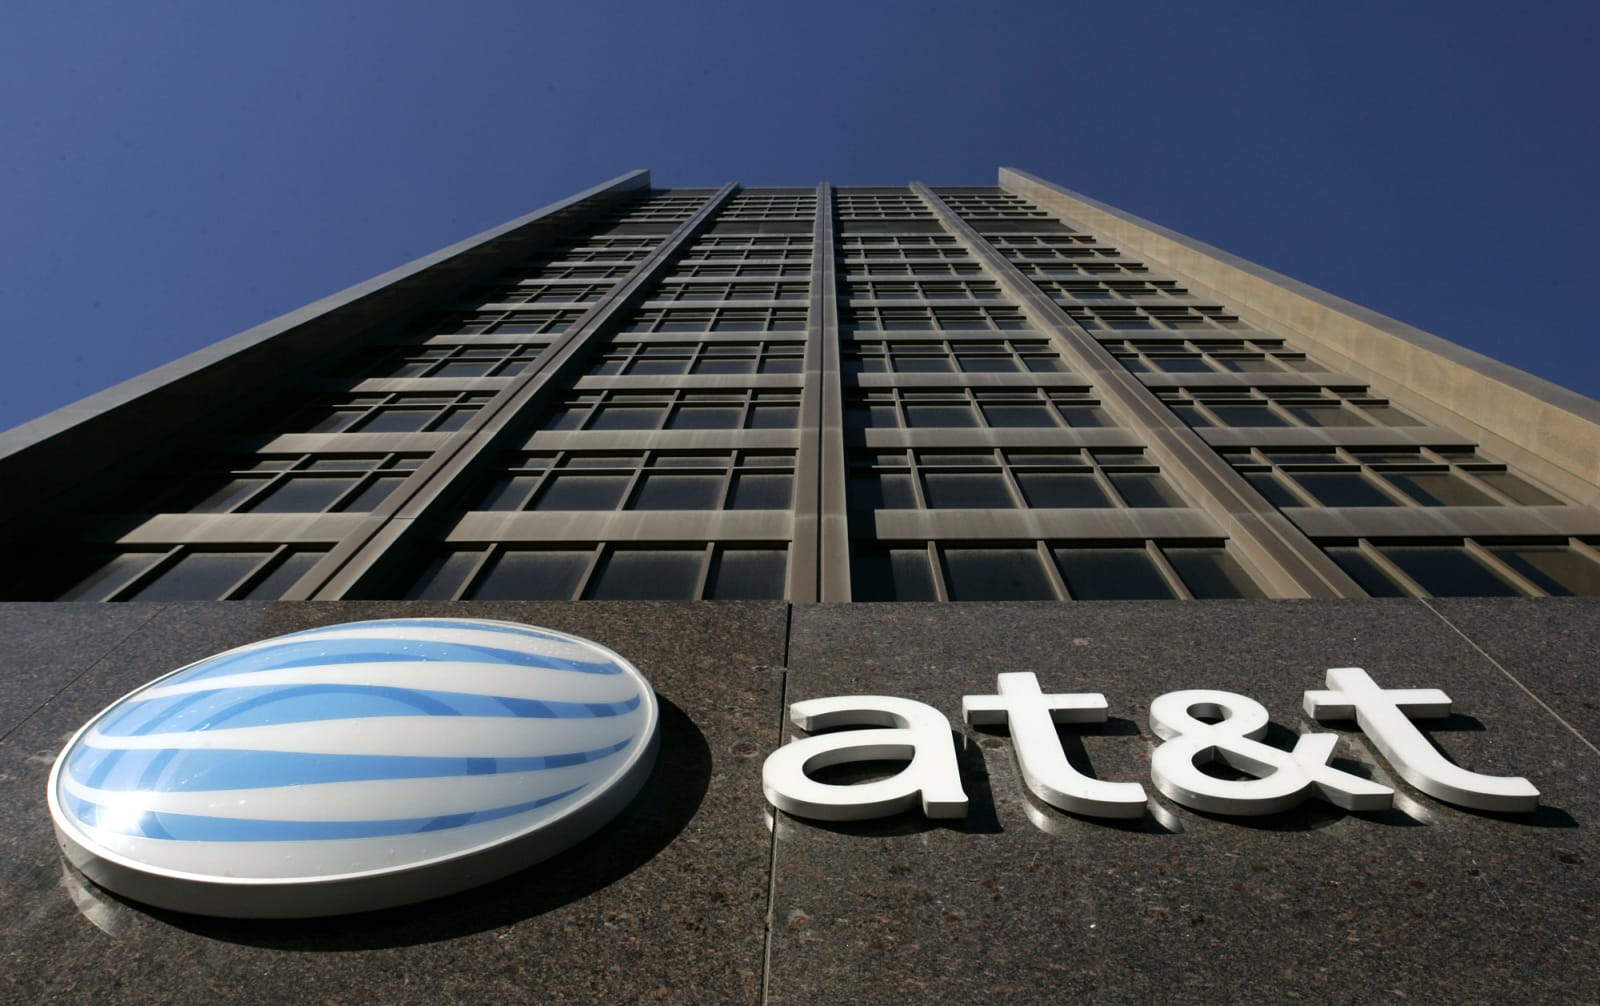 AT&T uses loophole to deny low-income internet discounts